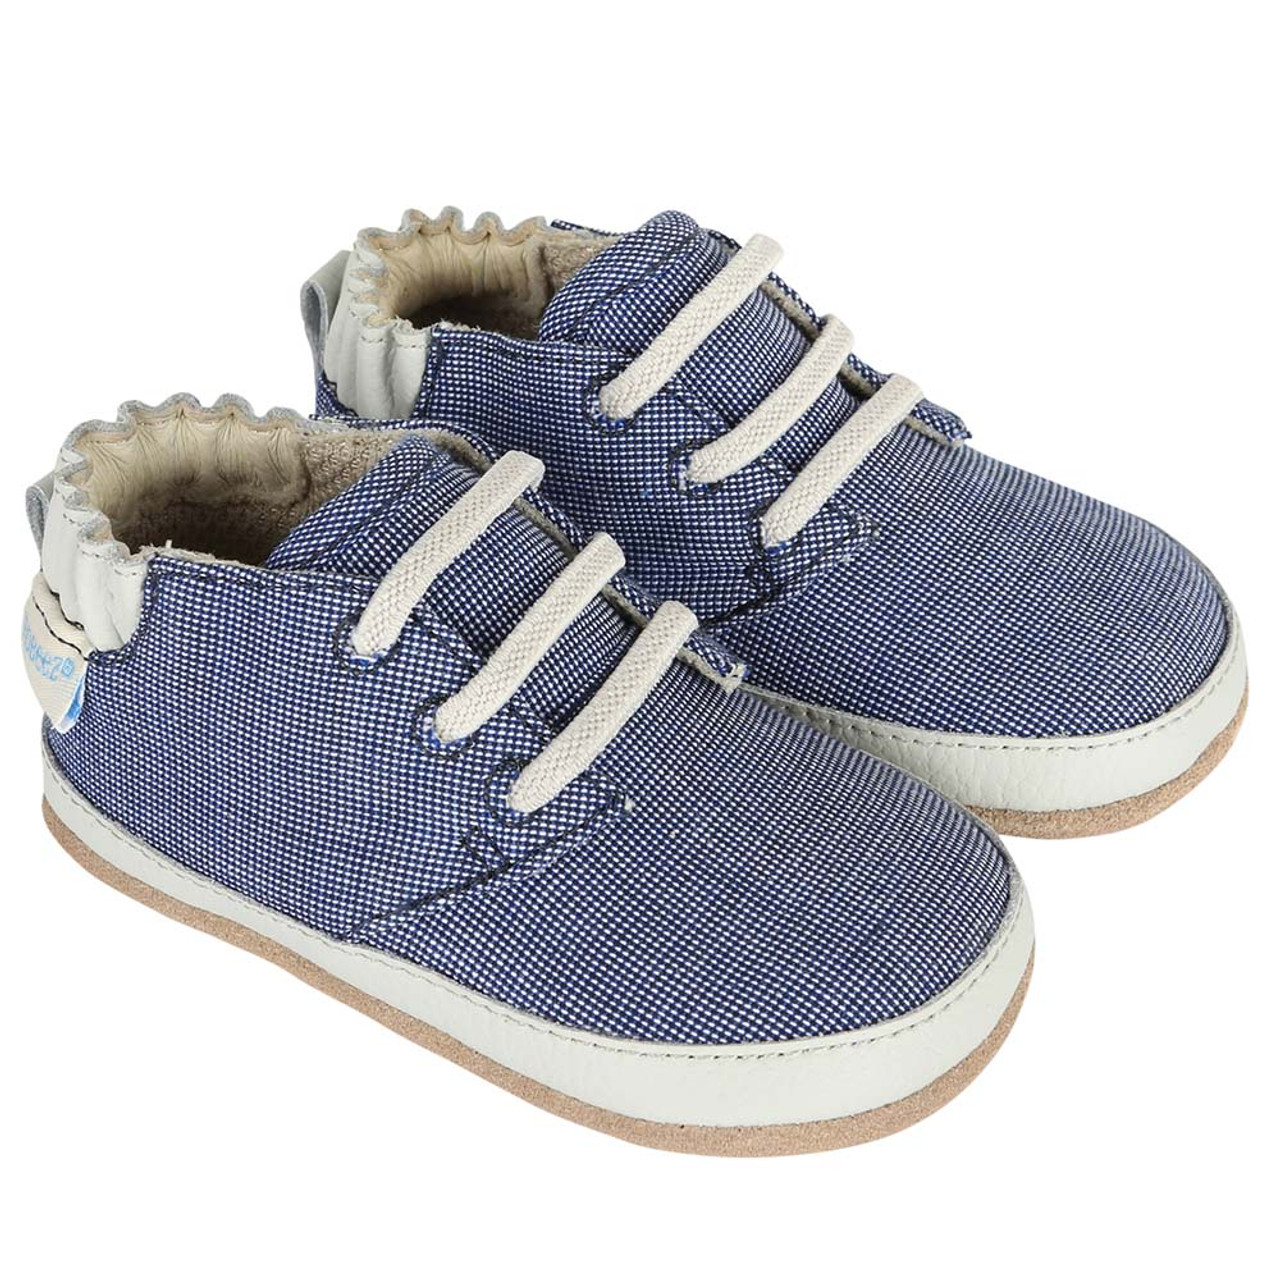 825a0a86a215 Navy canvas baby shoes with faux laces. Soft soles with rubber outer sole.  For